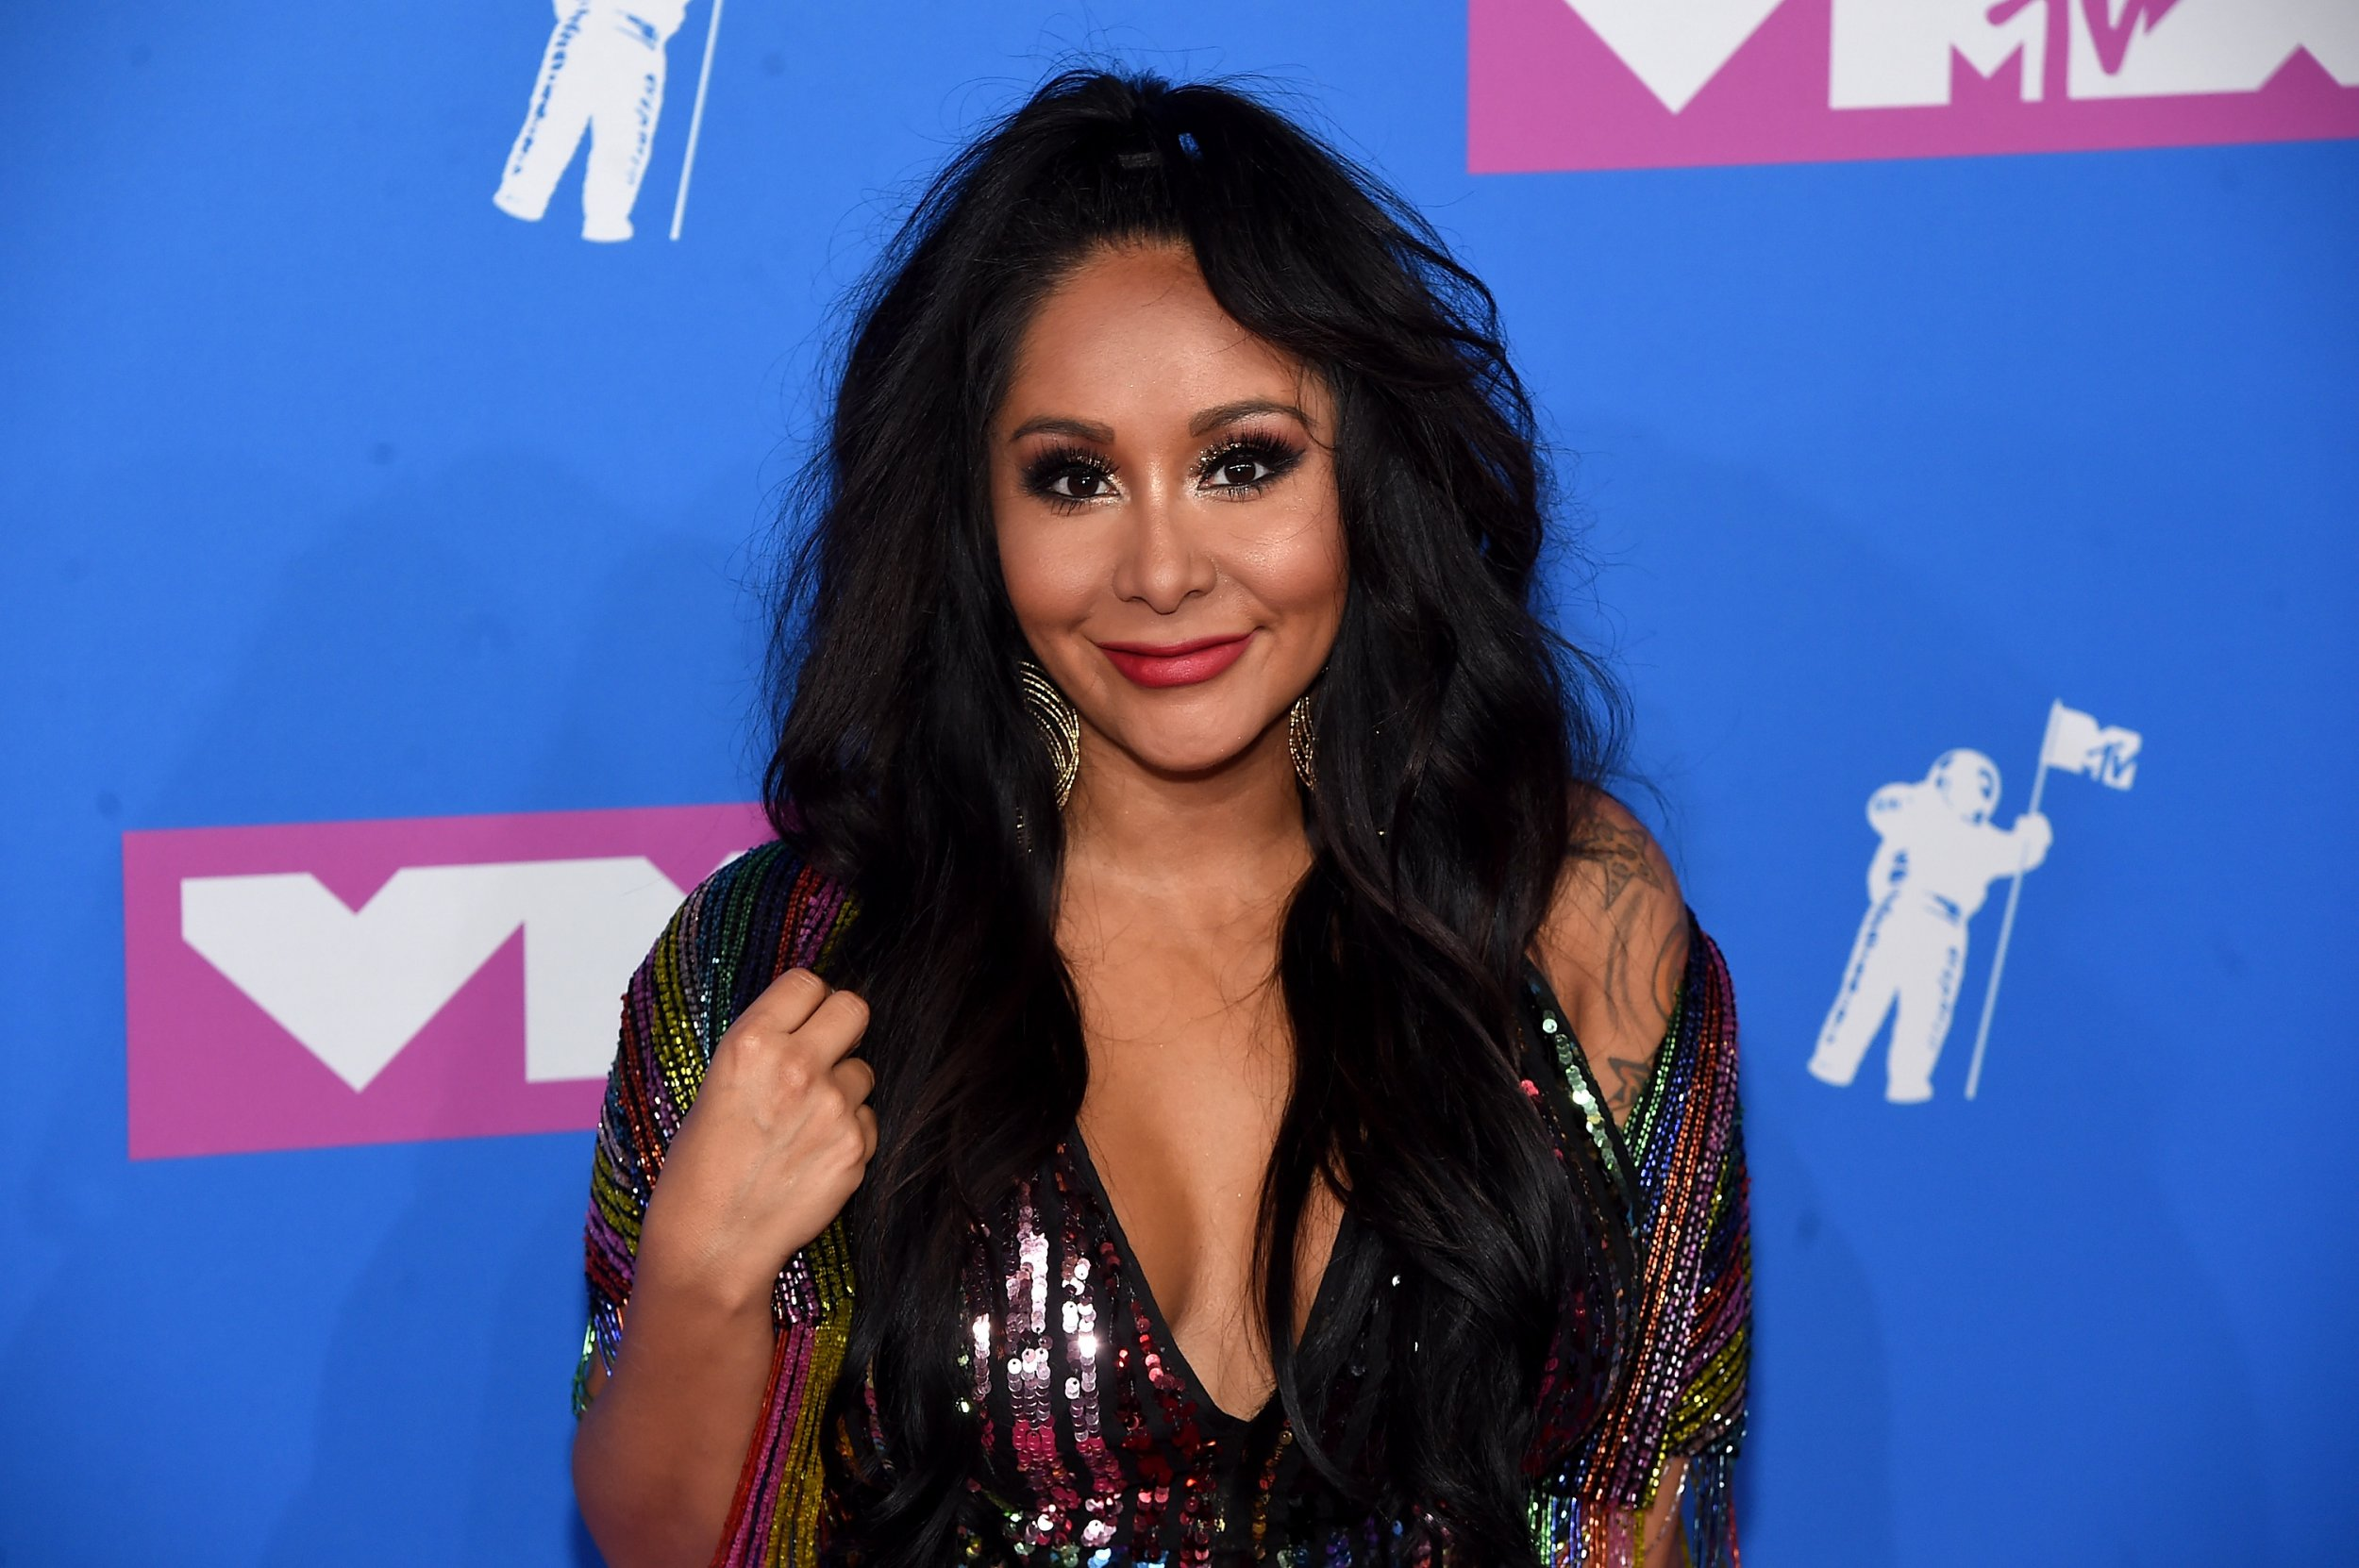 Nicole Polizzi Says 'Jersey Shore: Family Vacation' is Overly Edited